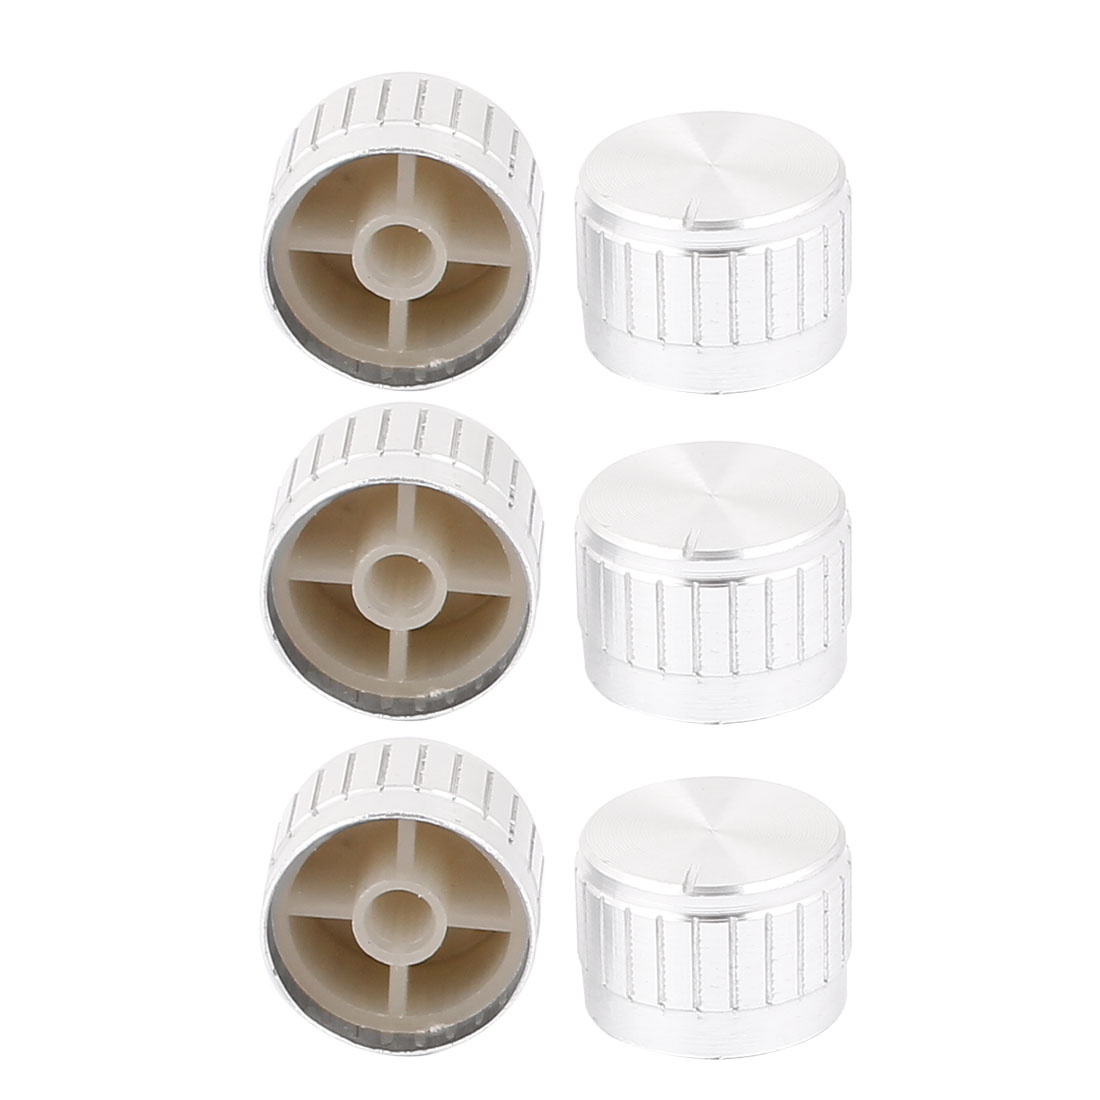 6 Pcs 26mm x 6mm Potentiometer Control Switch Volume Cap Aluminium Alloy Knurled Button Silver Tone